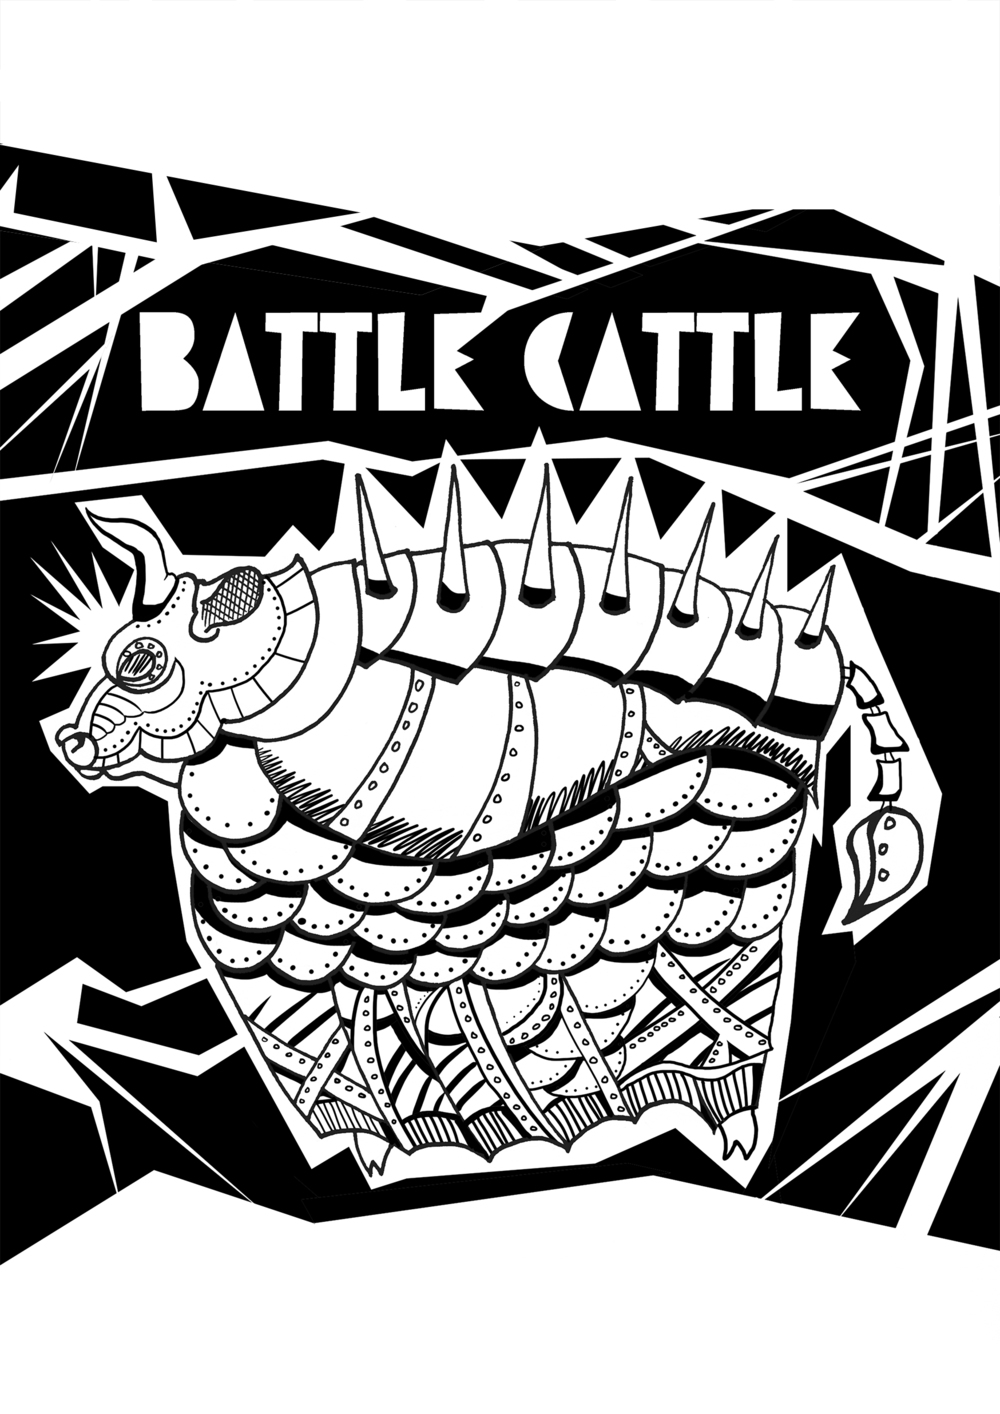 11 battle cattle.jpg